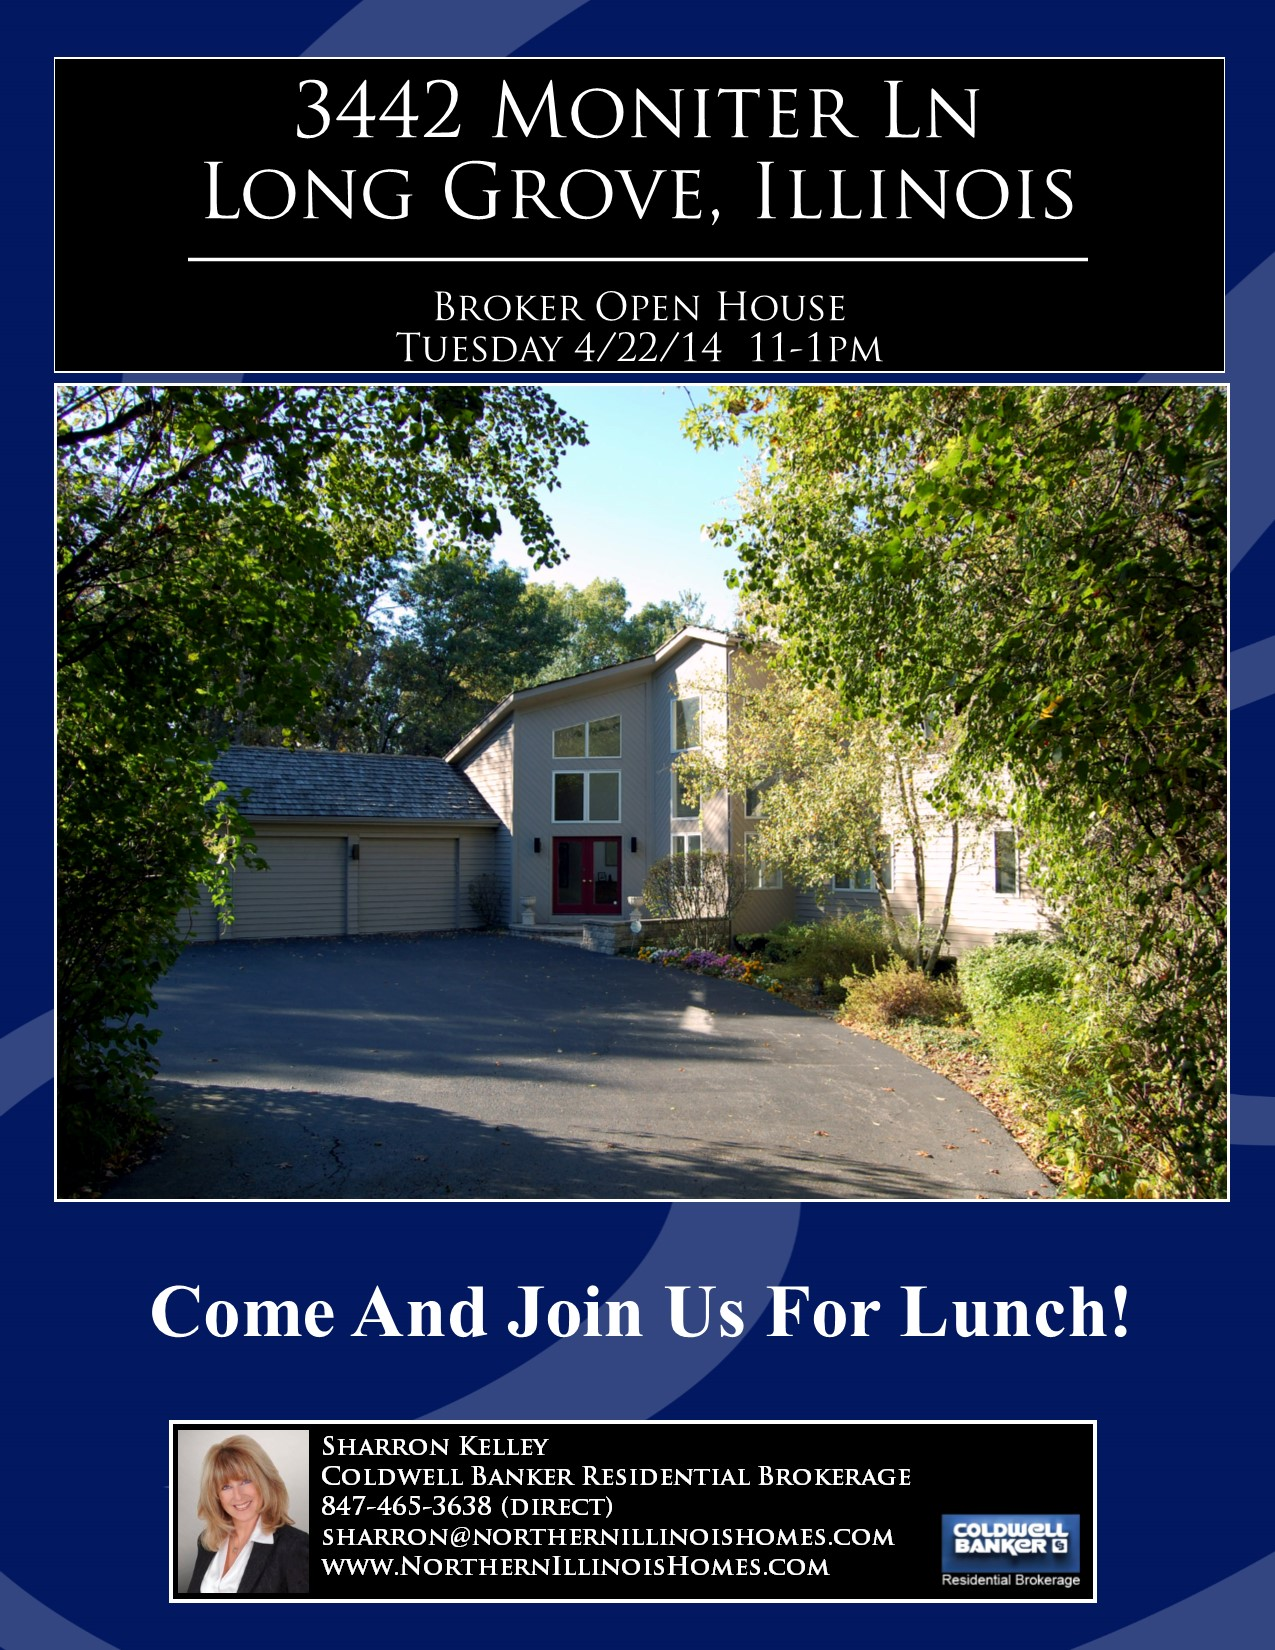 broker open house don t miss out